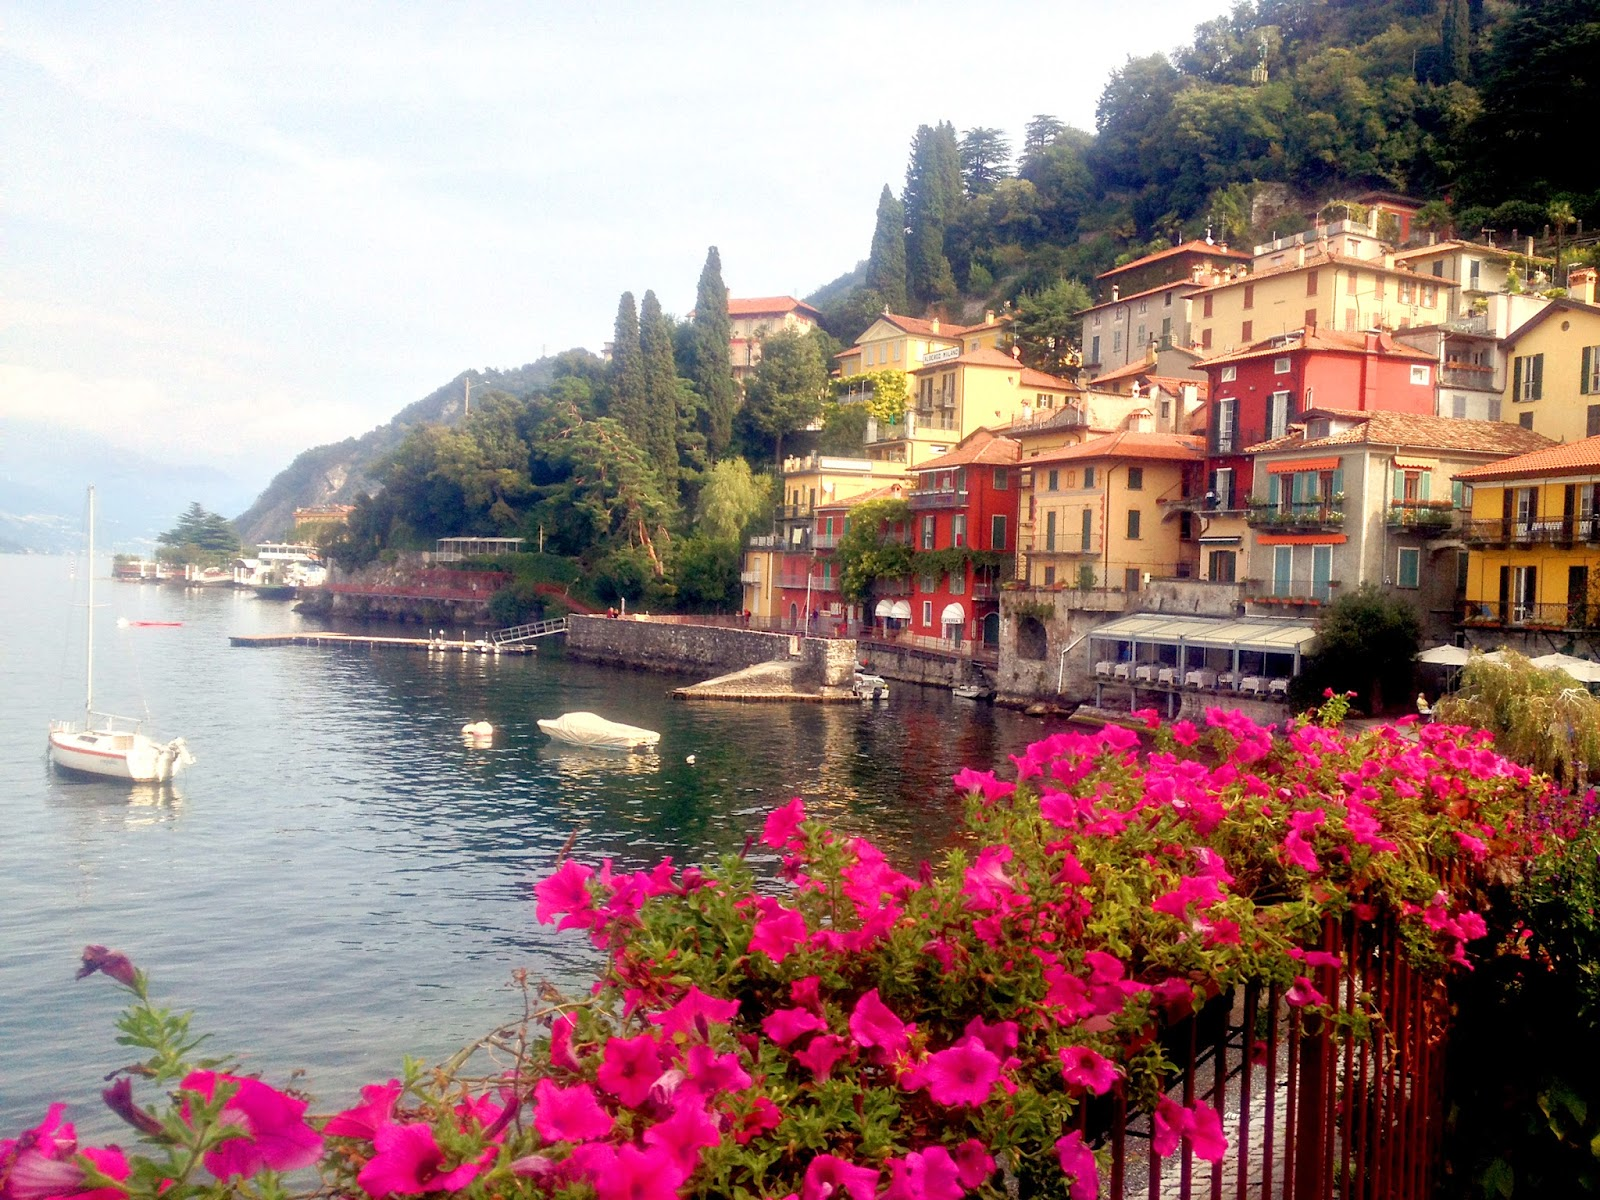 Our Trip to Italy – Part 2 of 2